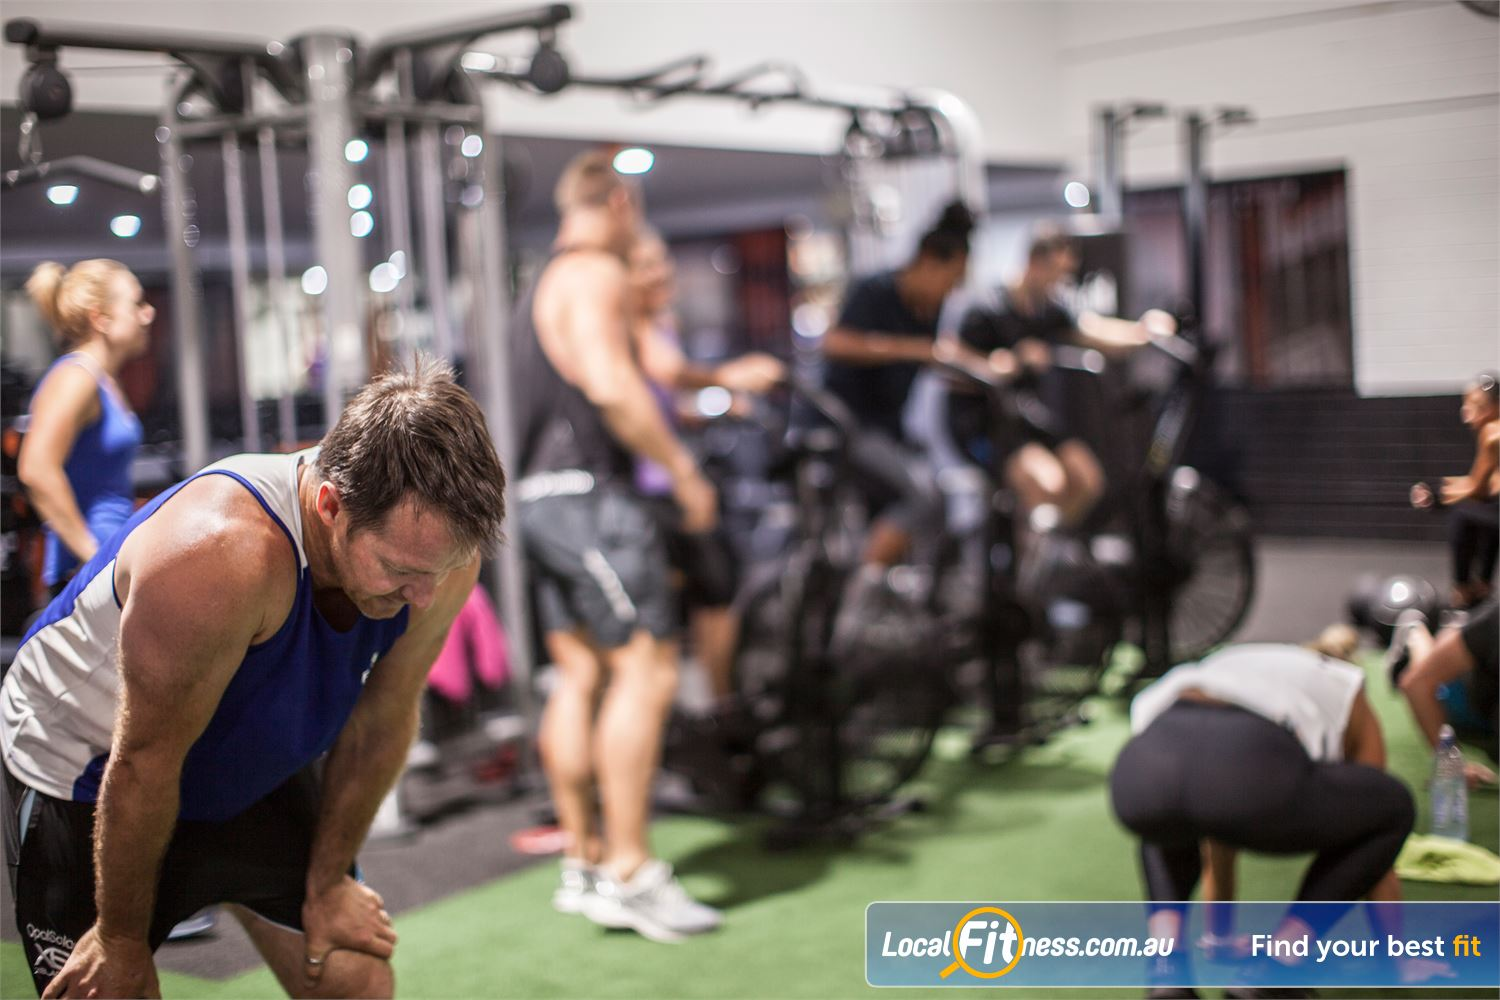 The Body Factory Near Dolans Bay Our Caringbah HIIT gym runs our range of innovative functional group classes.